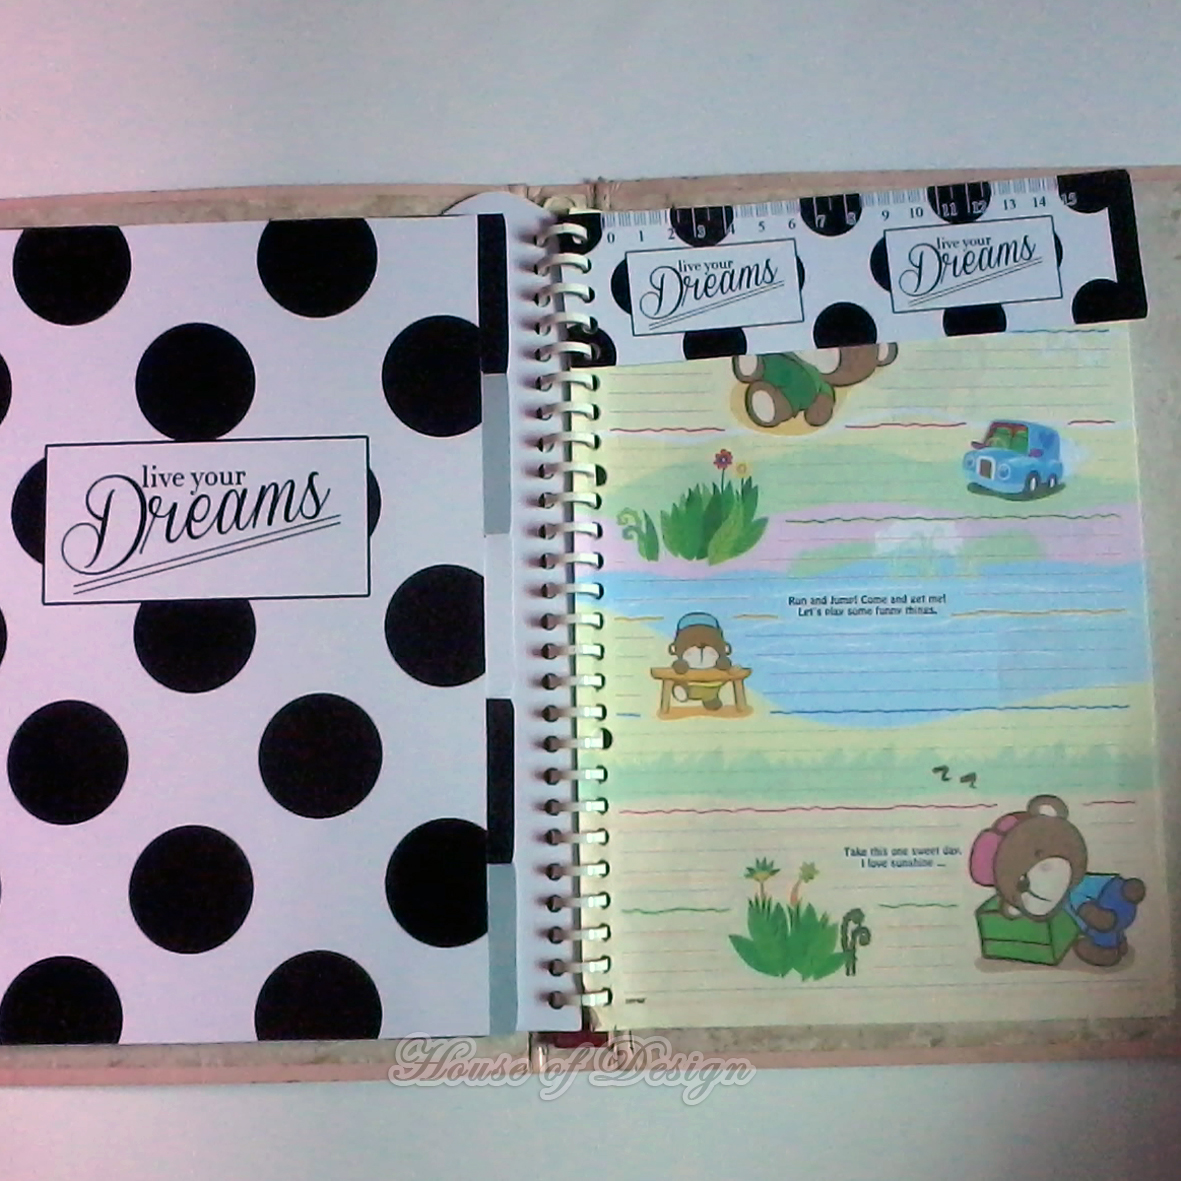 RULER DIVIDER BINDER CUSTOM, PENGGARIS BINDER CUSTOM, PENGGARIS BINDER 26 RING, PENGGARIS BINDER UKURAN B5, PENGGARIS BINDER BLACK & WHITE, PENGGARIS BINDER POLKADOT, PENGGARIS BINDER QUOTE, PENGGARIS BINDER QUOTES, PENGGARIS BINDER KATA-KATA